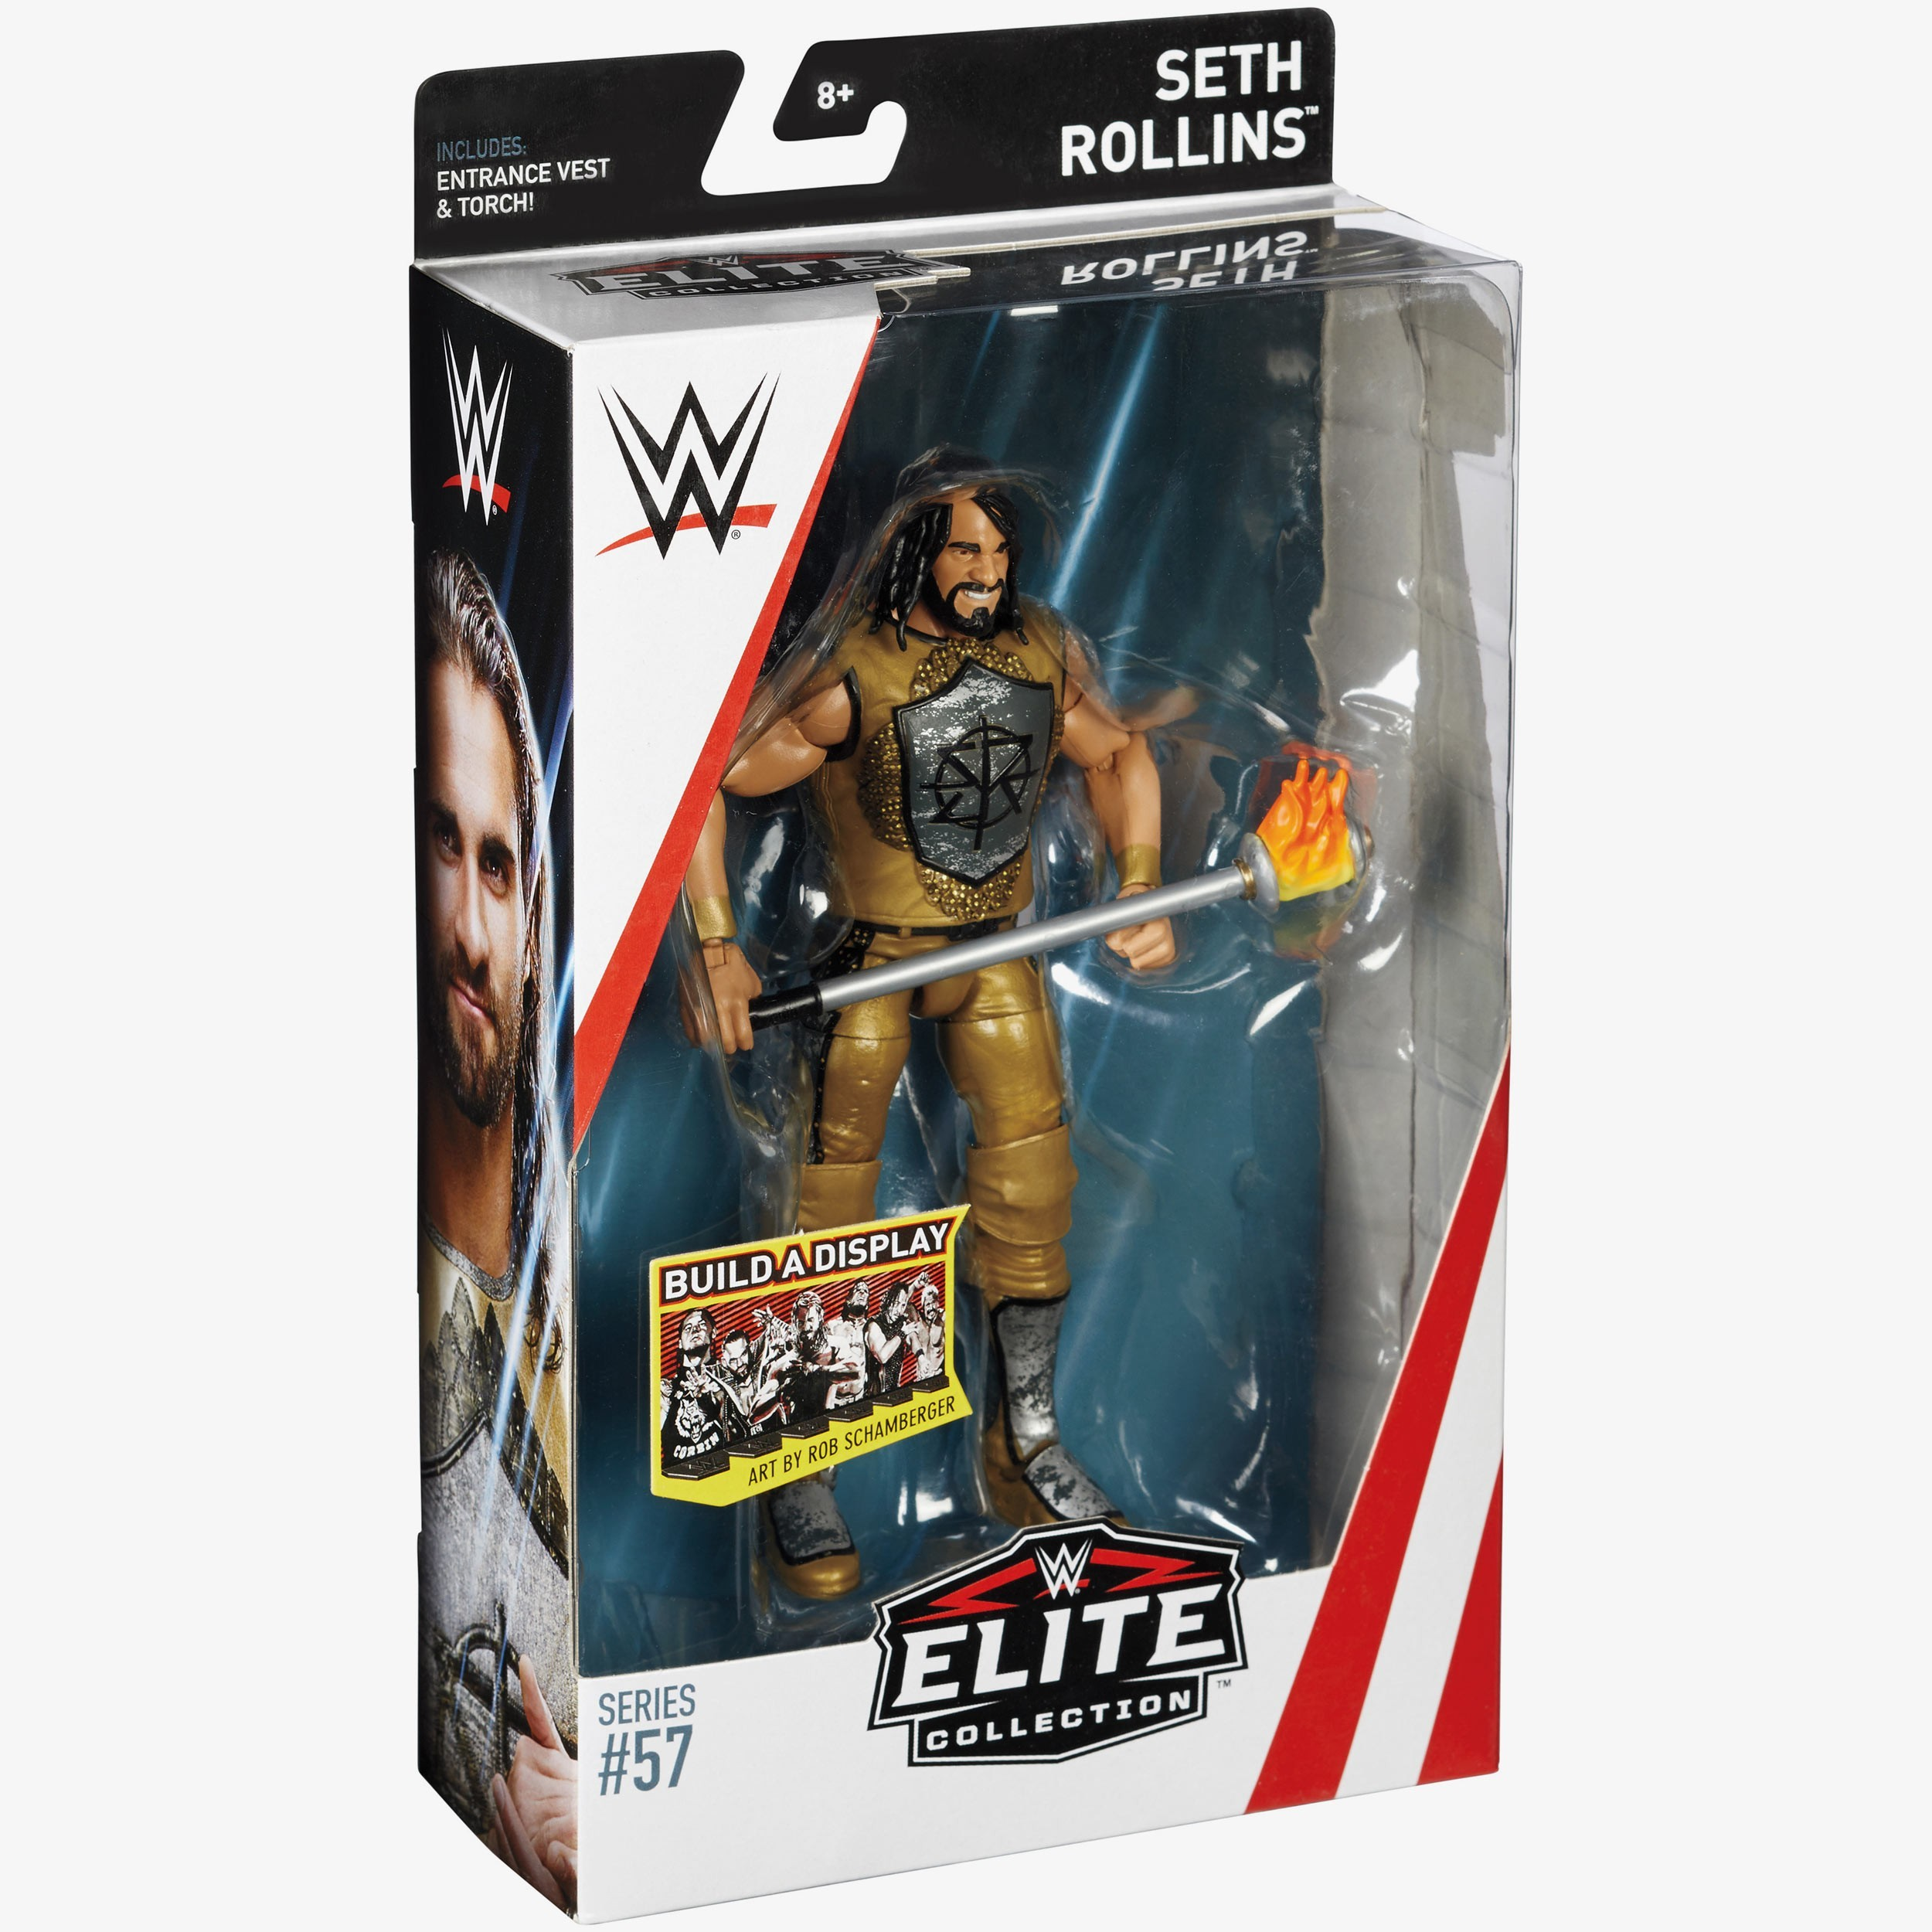 Seth Rollins Wwe Elite Collection Series 57